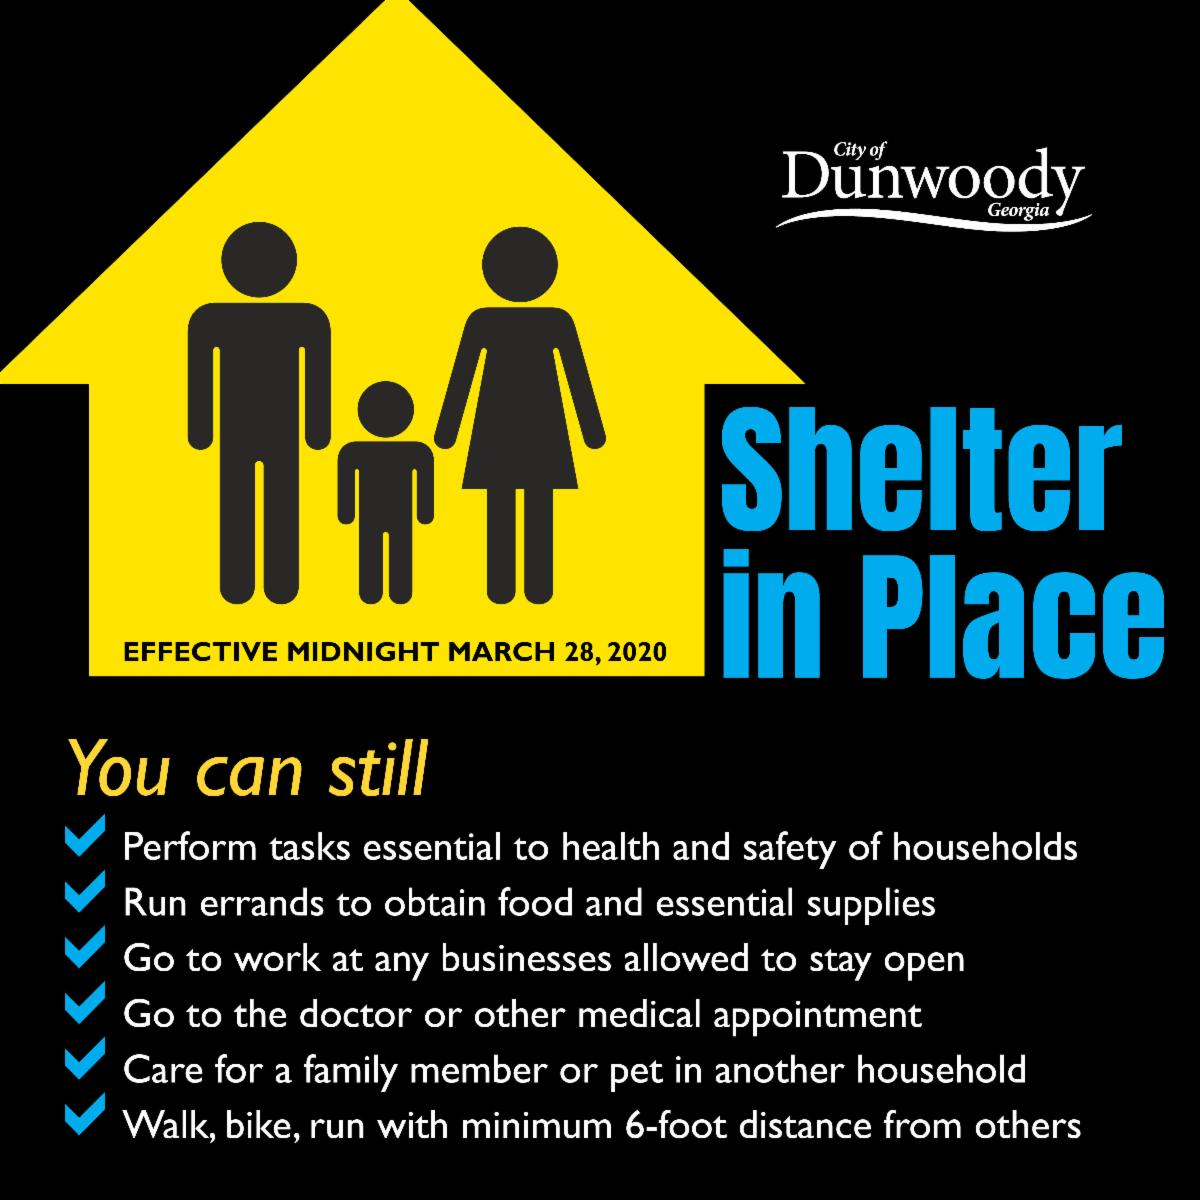 details of shelter in place order